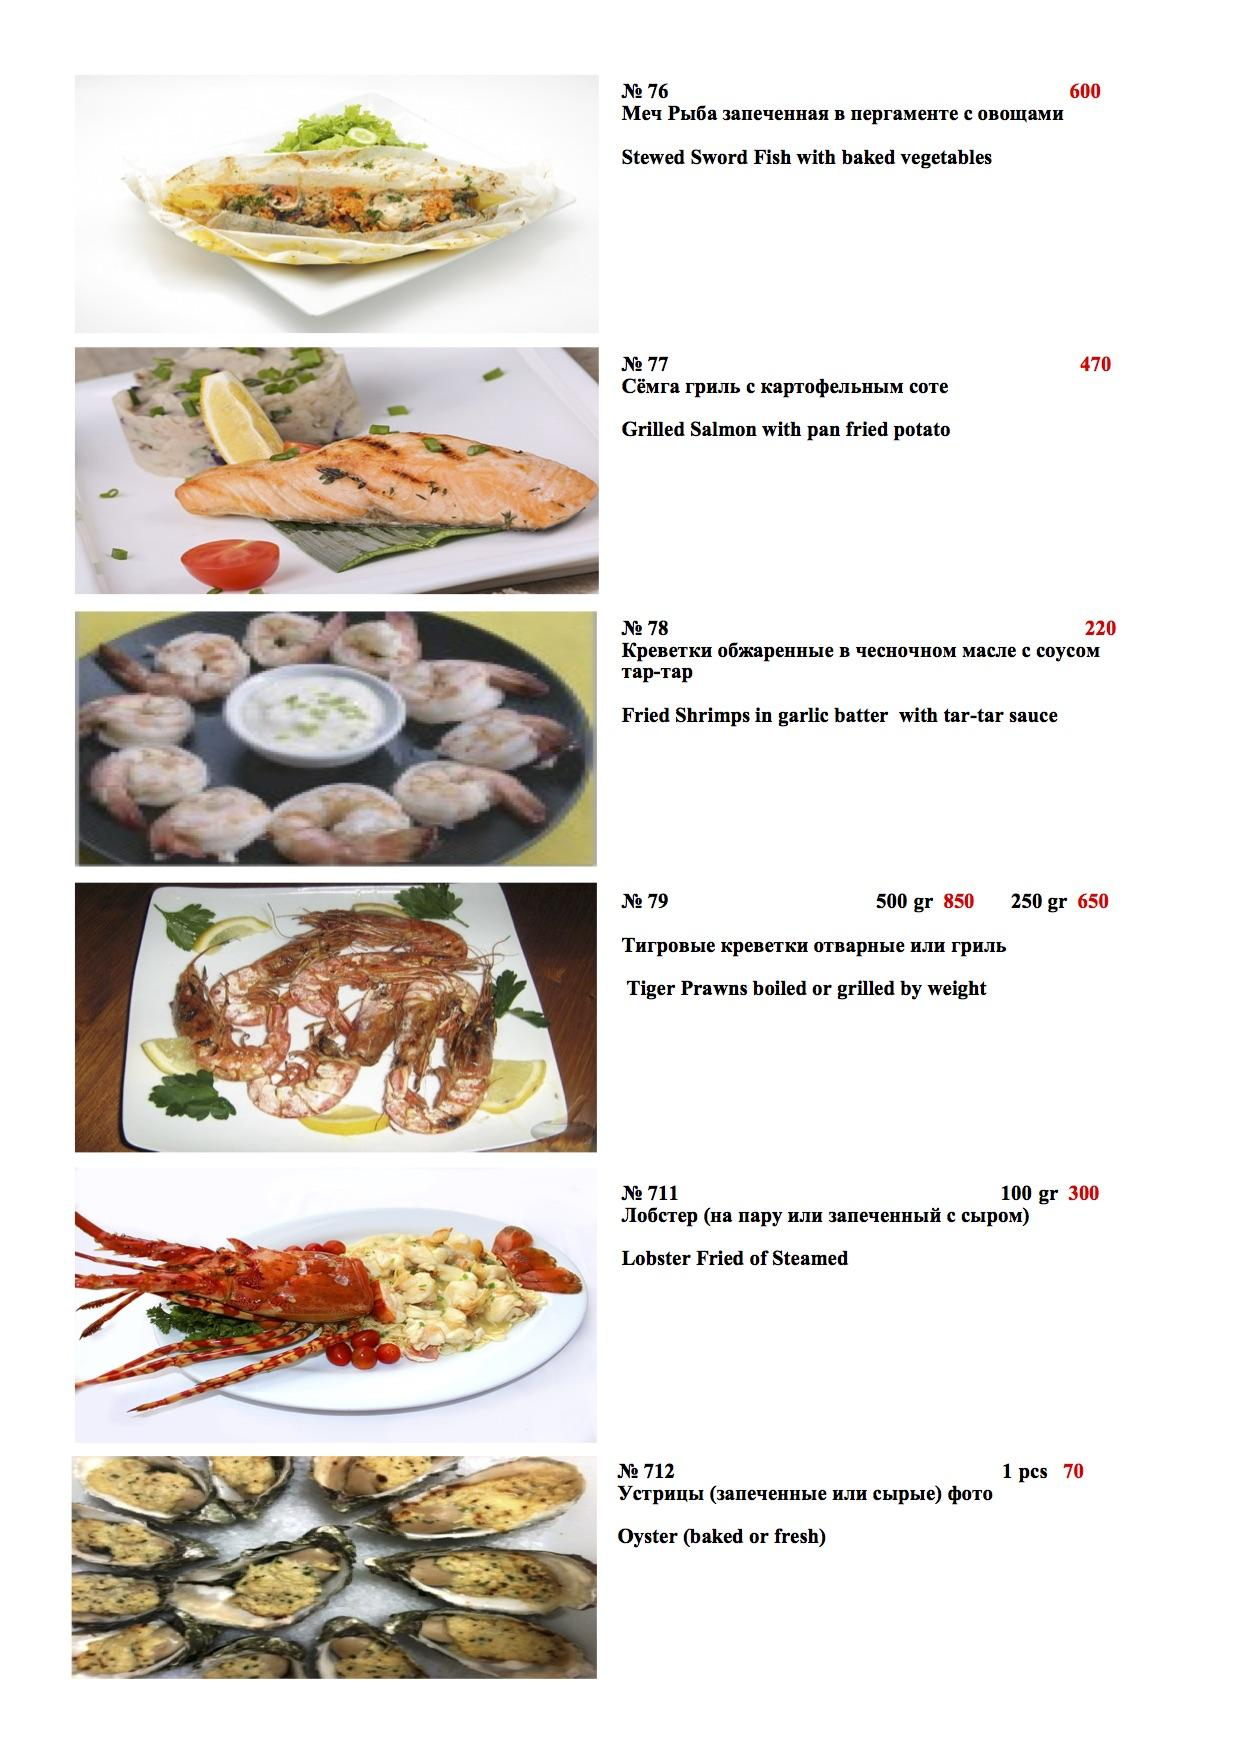 Food delivery in Phuket - Seafood 2